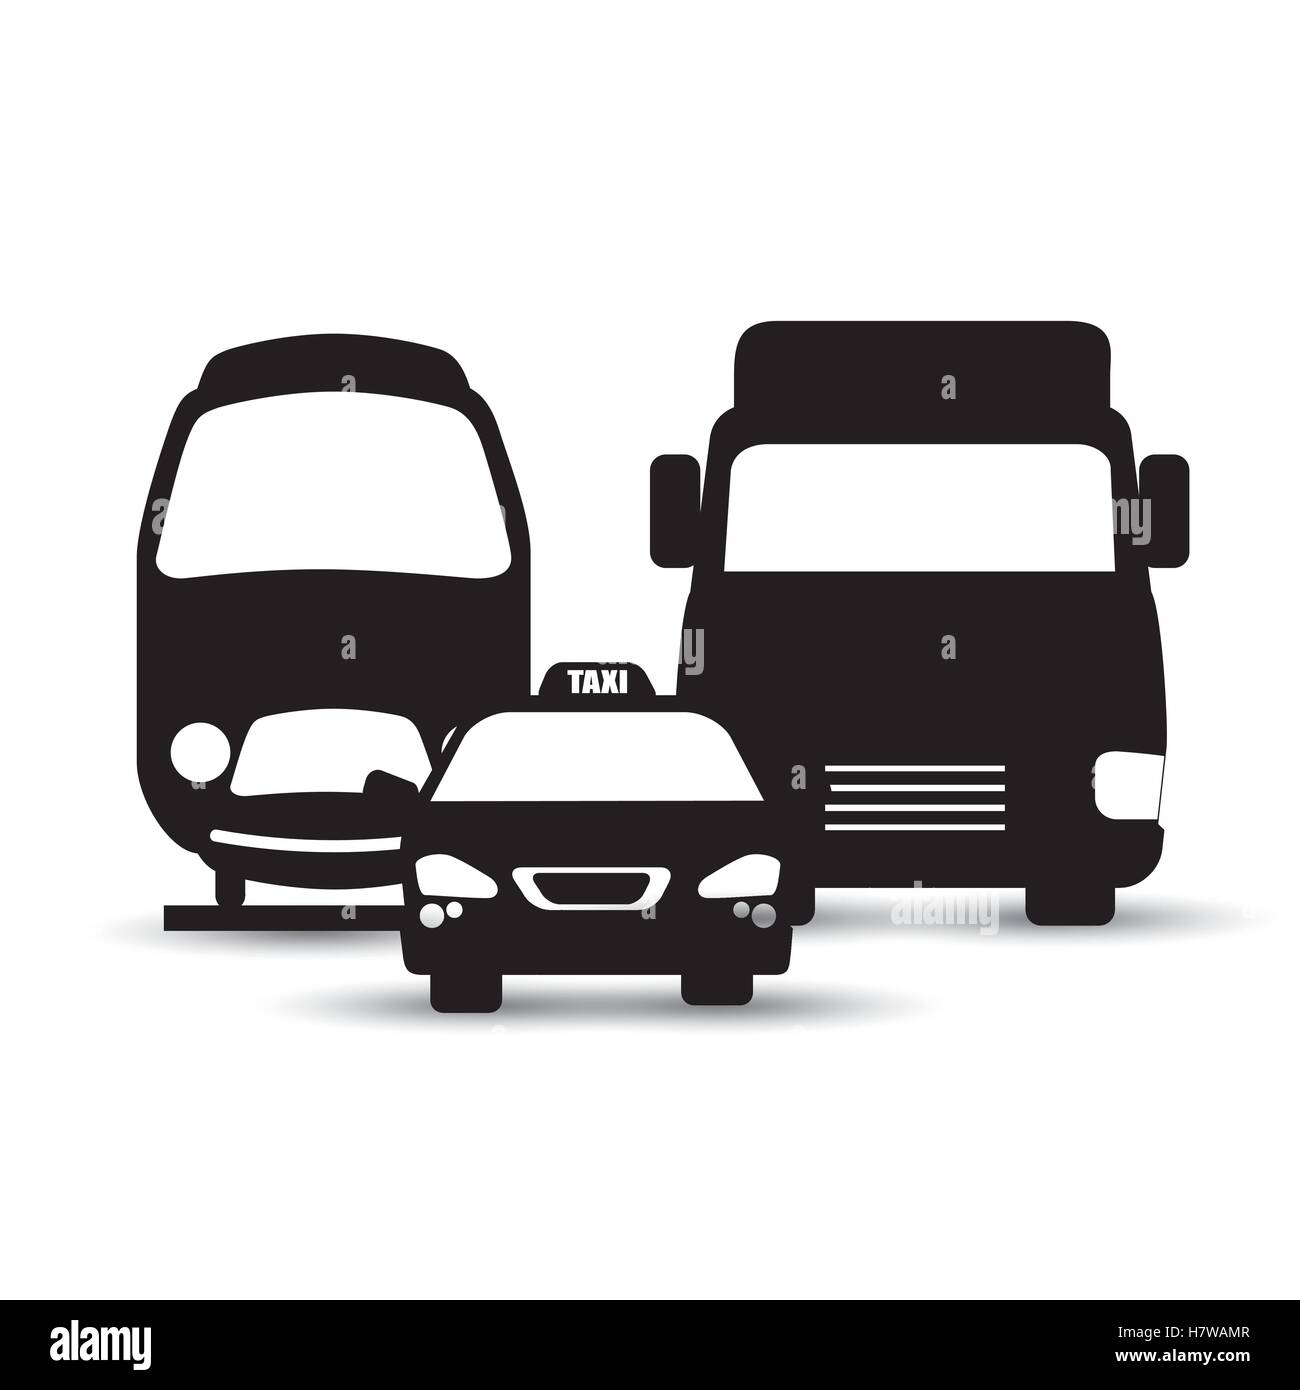 collection silhouettes cars transport service vector illustration eps 10 - Stock Image